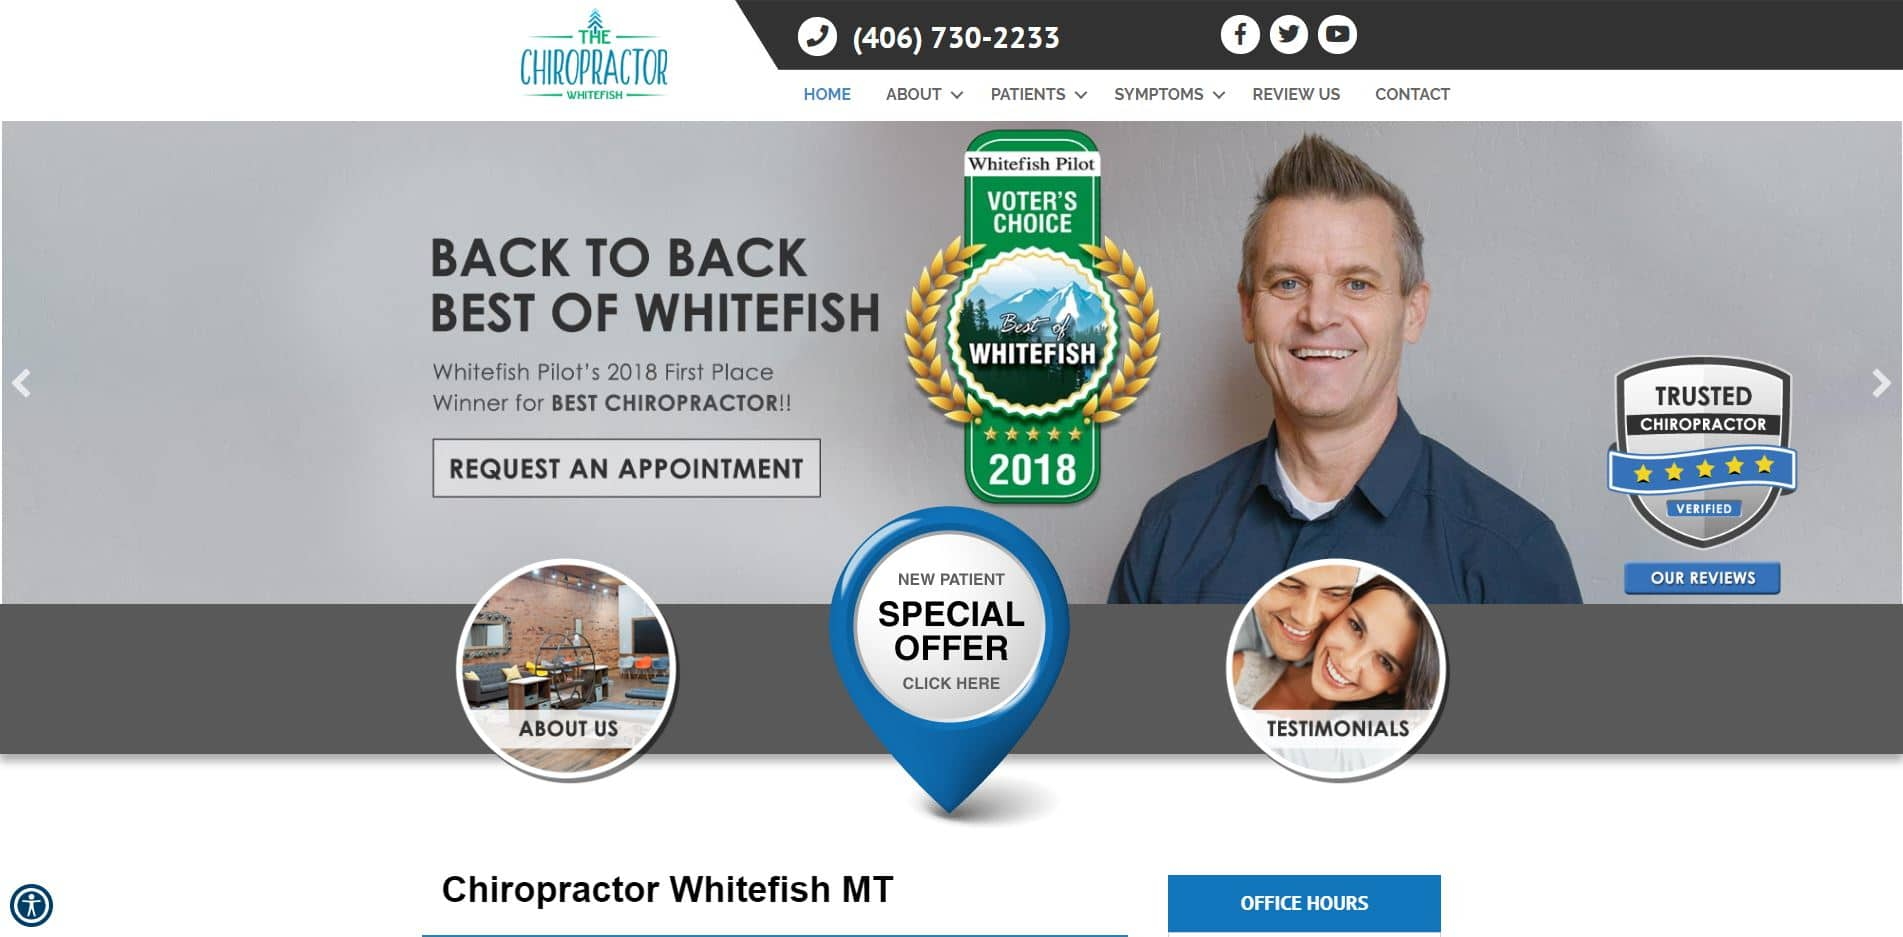 Chiropractor in Whitefish